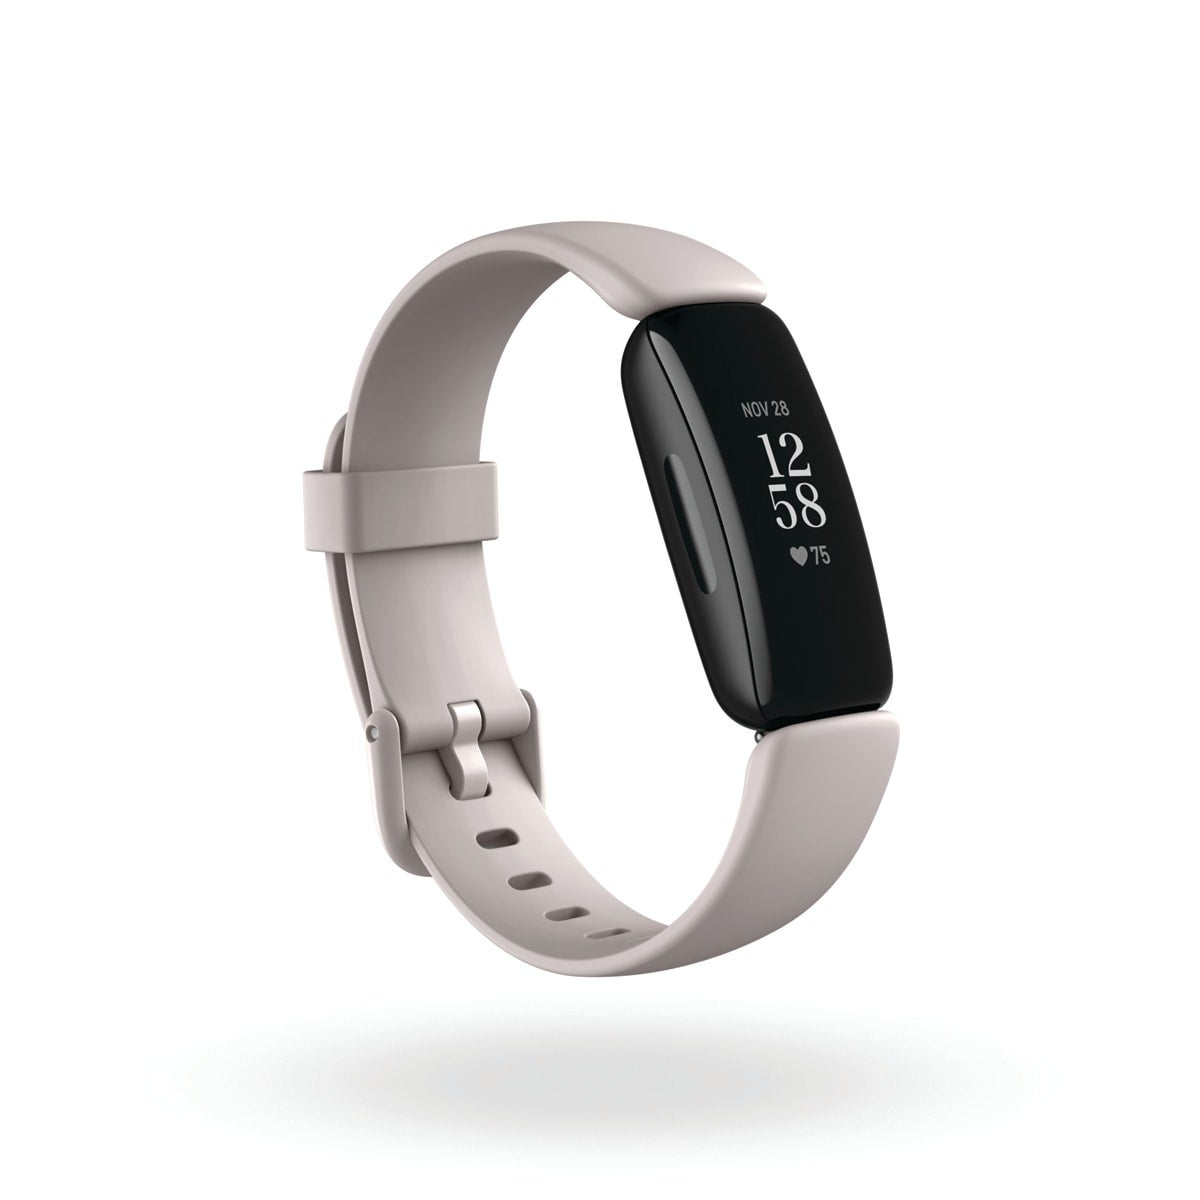 Fitbit Inspire 2, colour white, 24/7 heart rate, cardio fitness level, 20+ exercise modes + SmartTrack, all-day calorie burn, swimproof, up to 10 days of battery, sleep stages